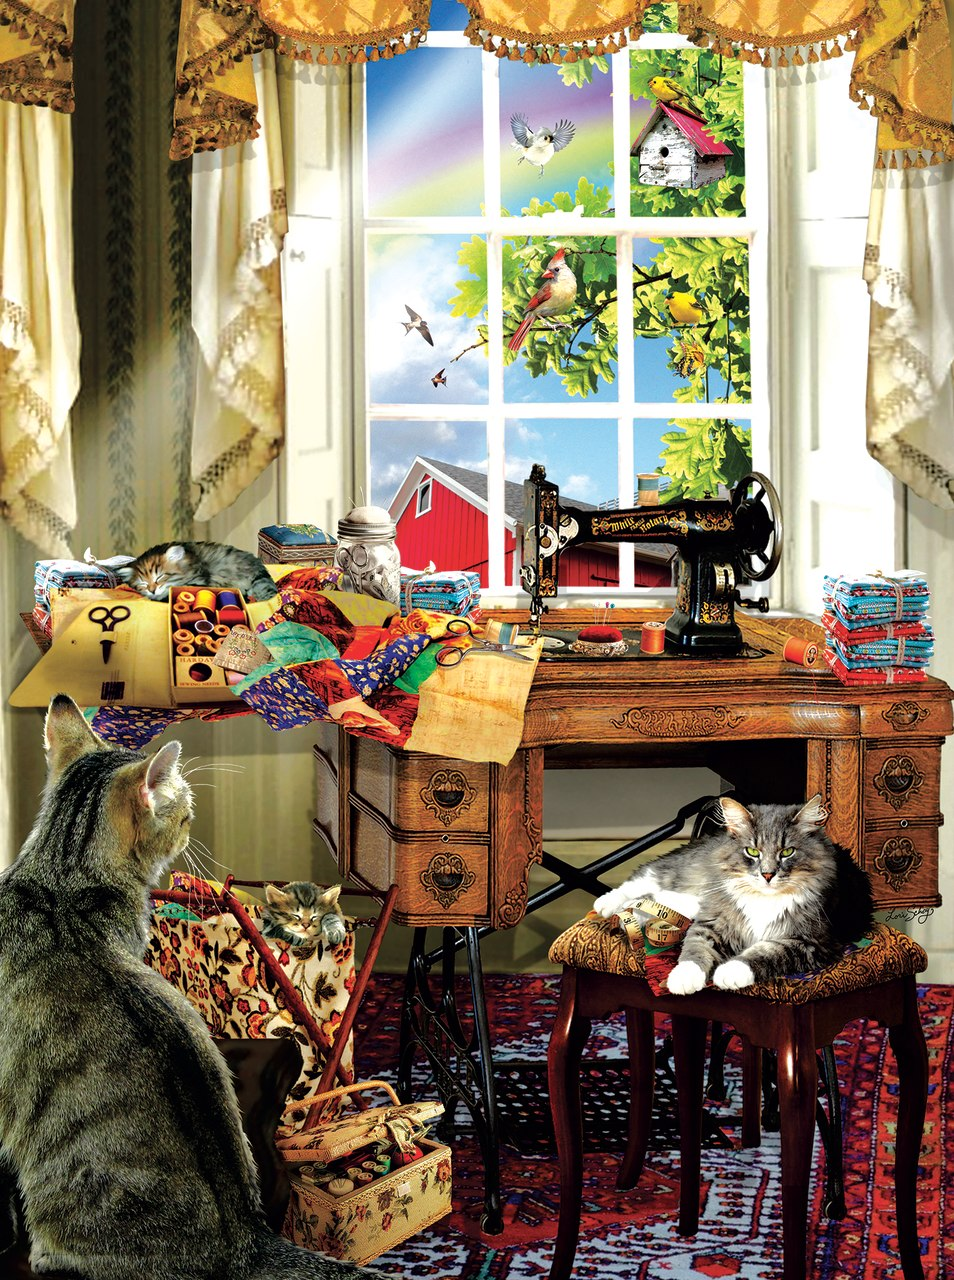 The Sewing Room - 300pc Jigsaw Puzzle By Sunsout  			  					NEW